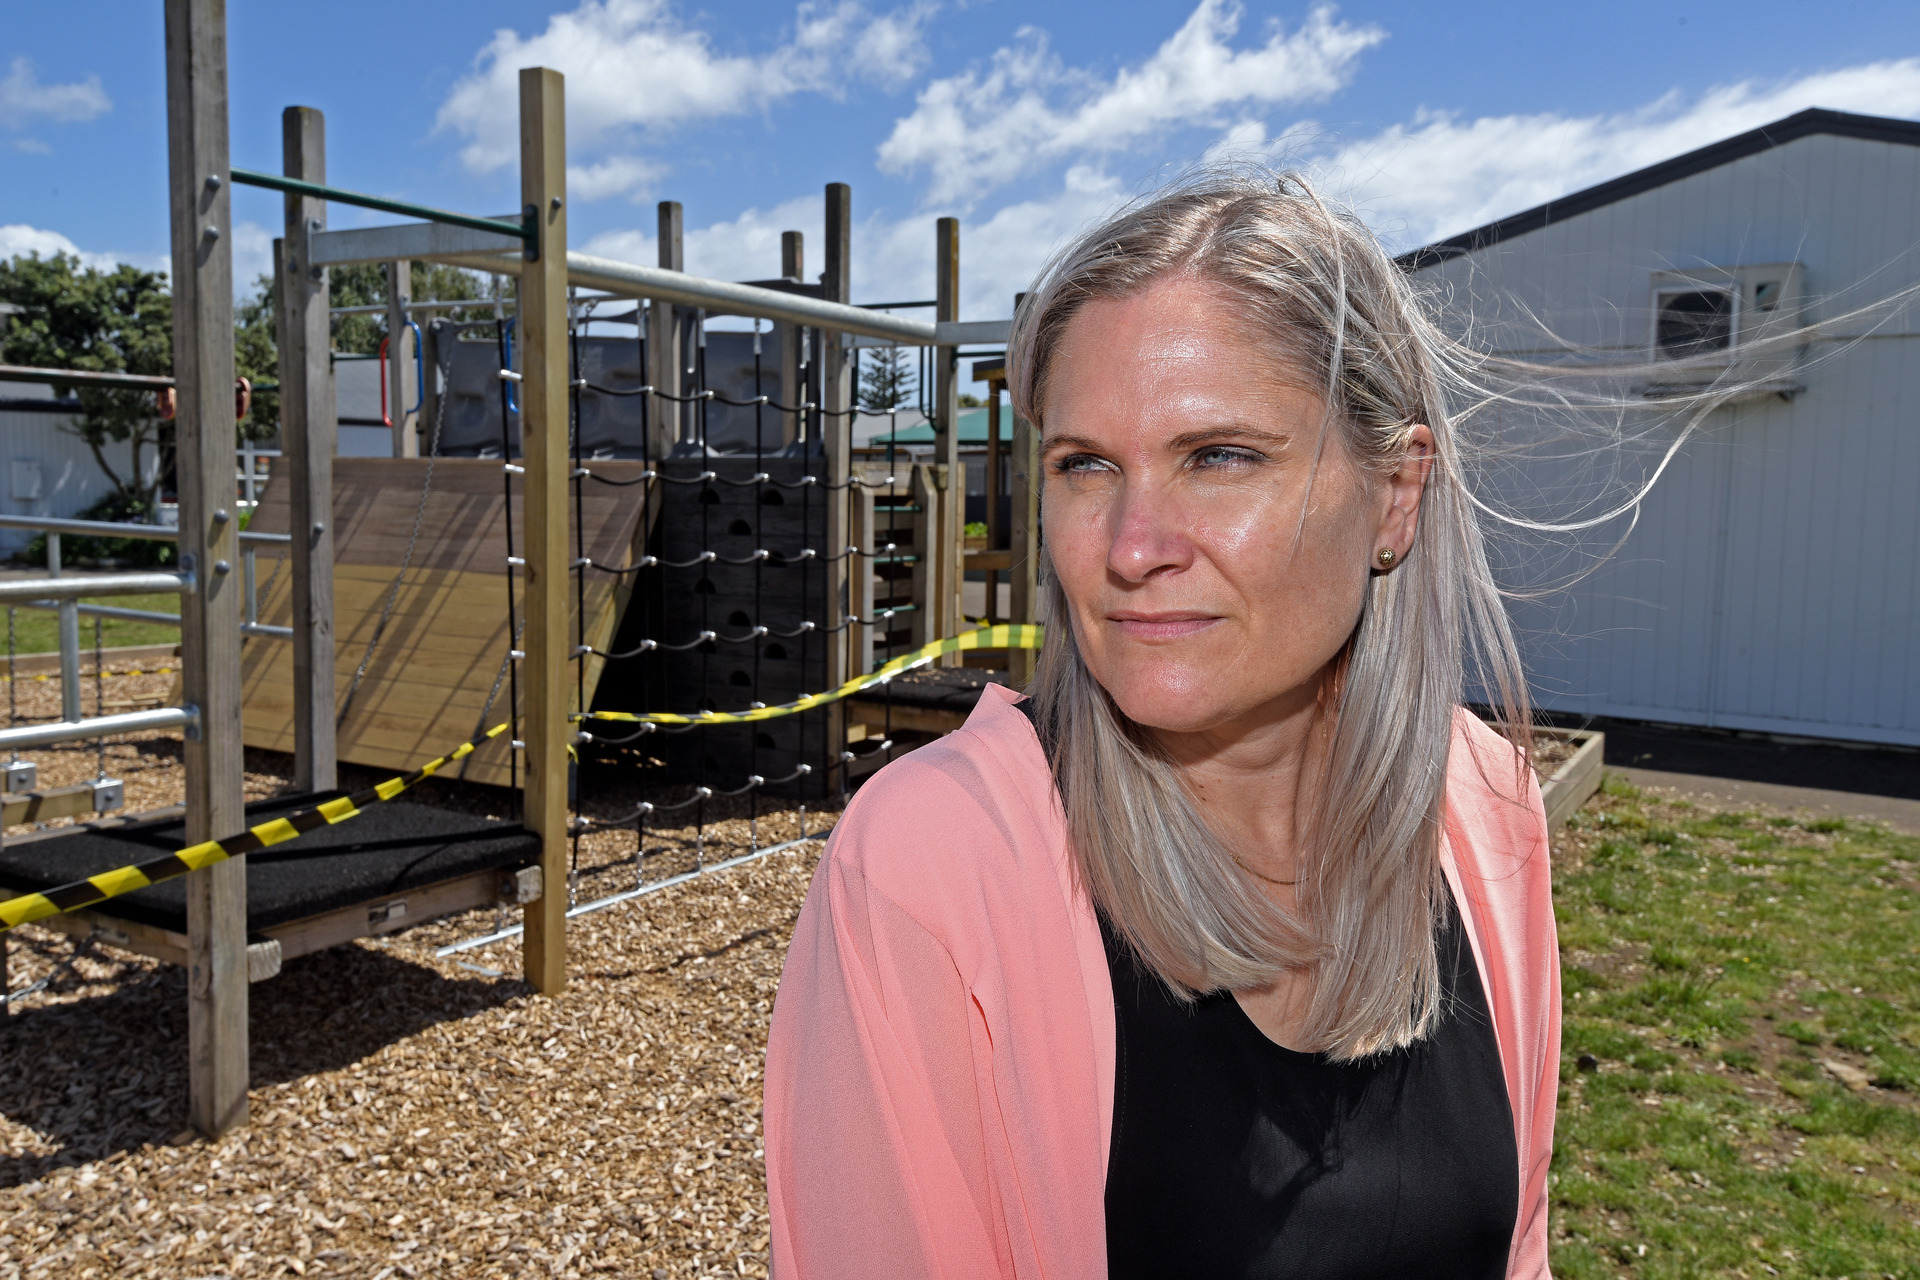 Vandals May Be Targeting Kids With Nut Allergies By Smearing Peanut Butter On Playgrounds picture